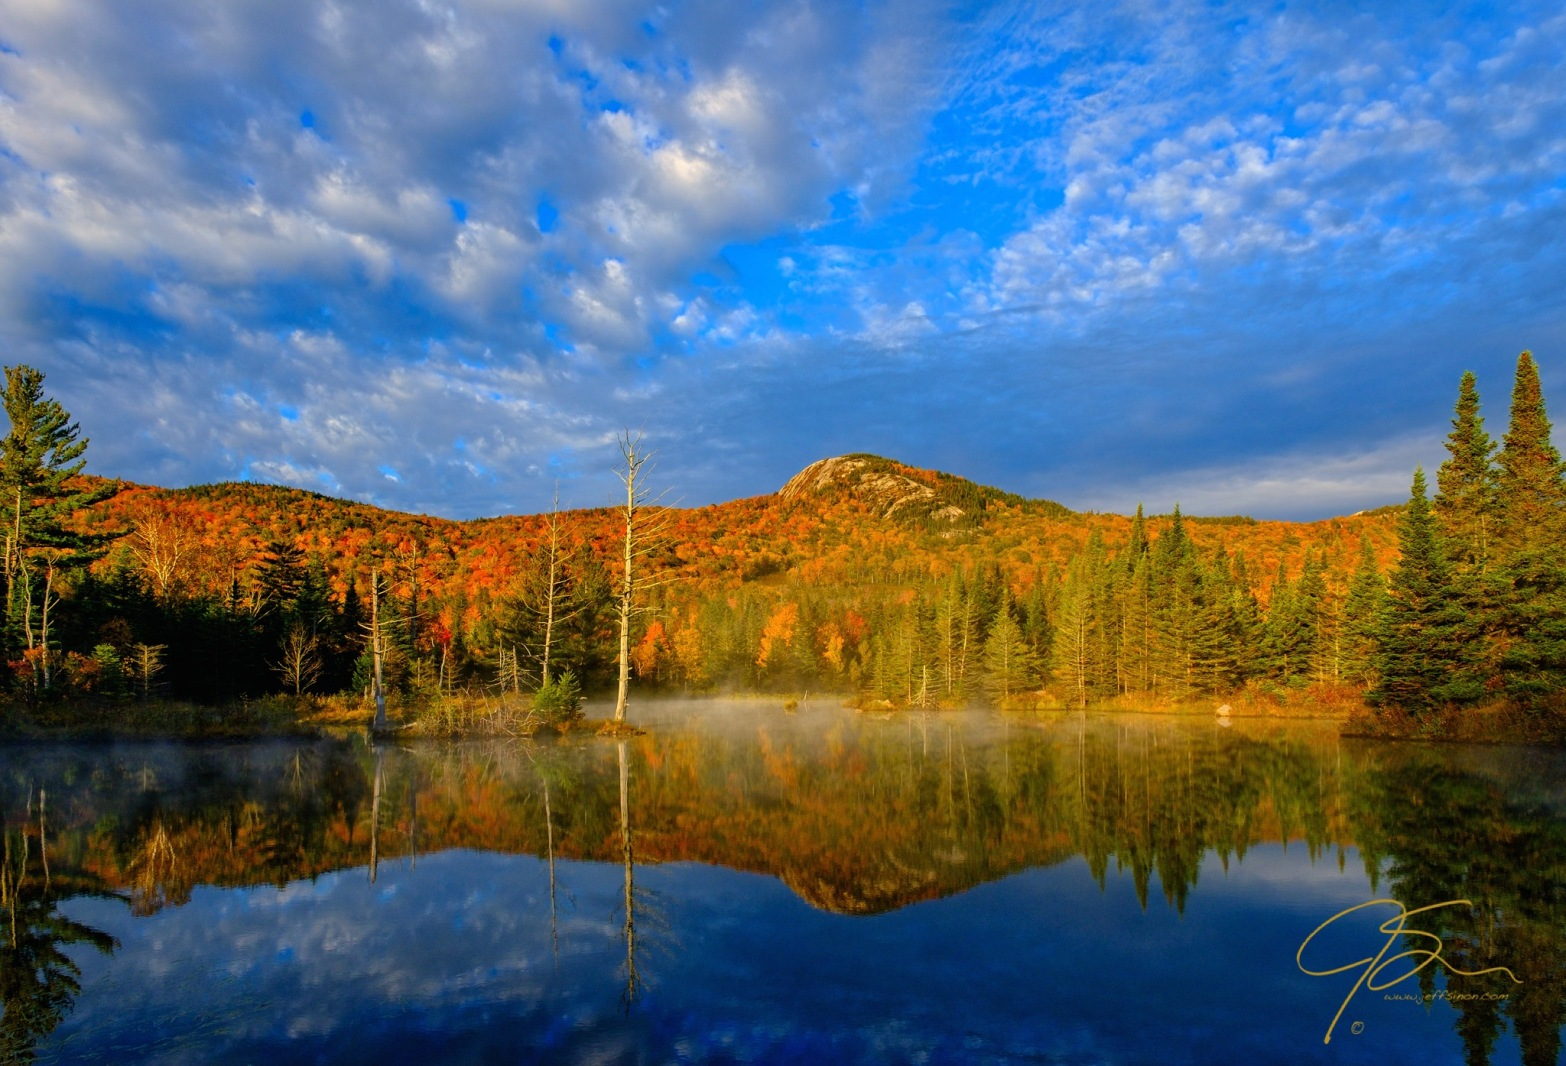 Middle Sugarloaf Mountain From Wildlife Pond, Autumn.